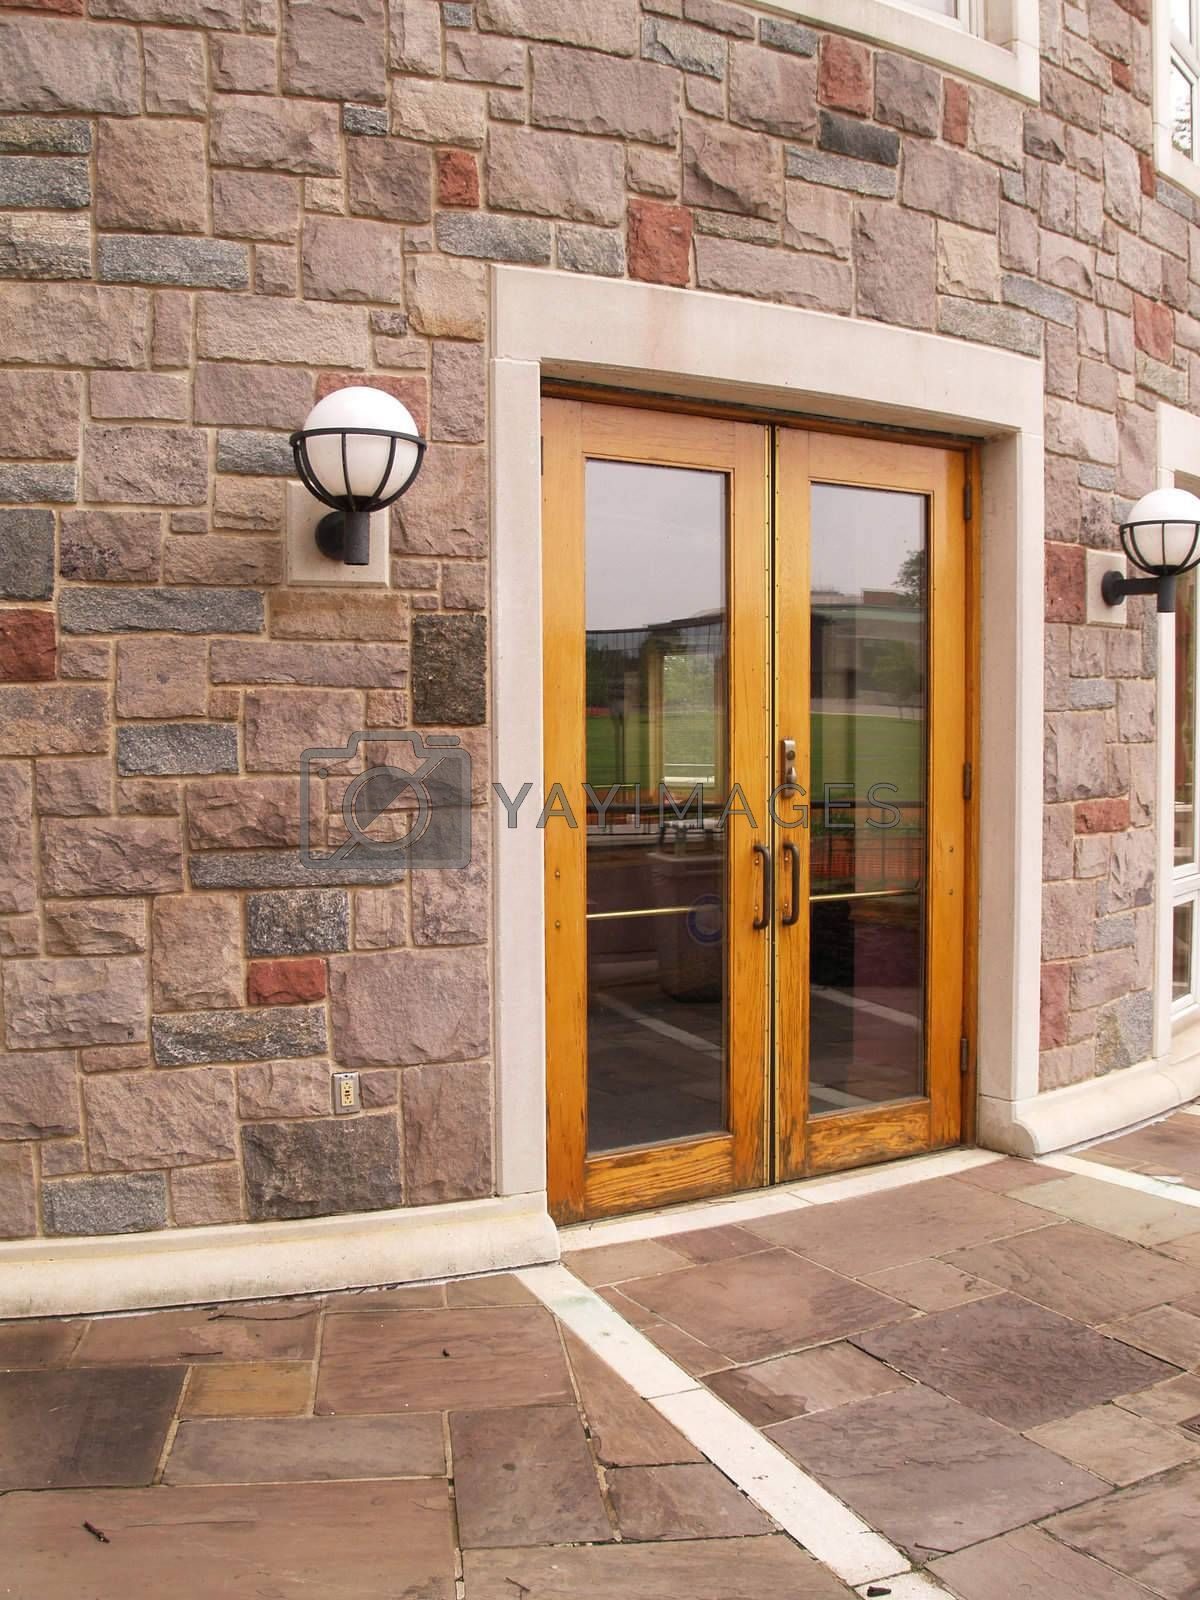 double wood doors by a stone building